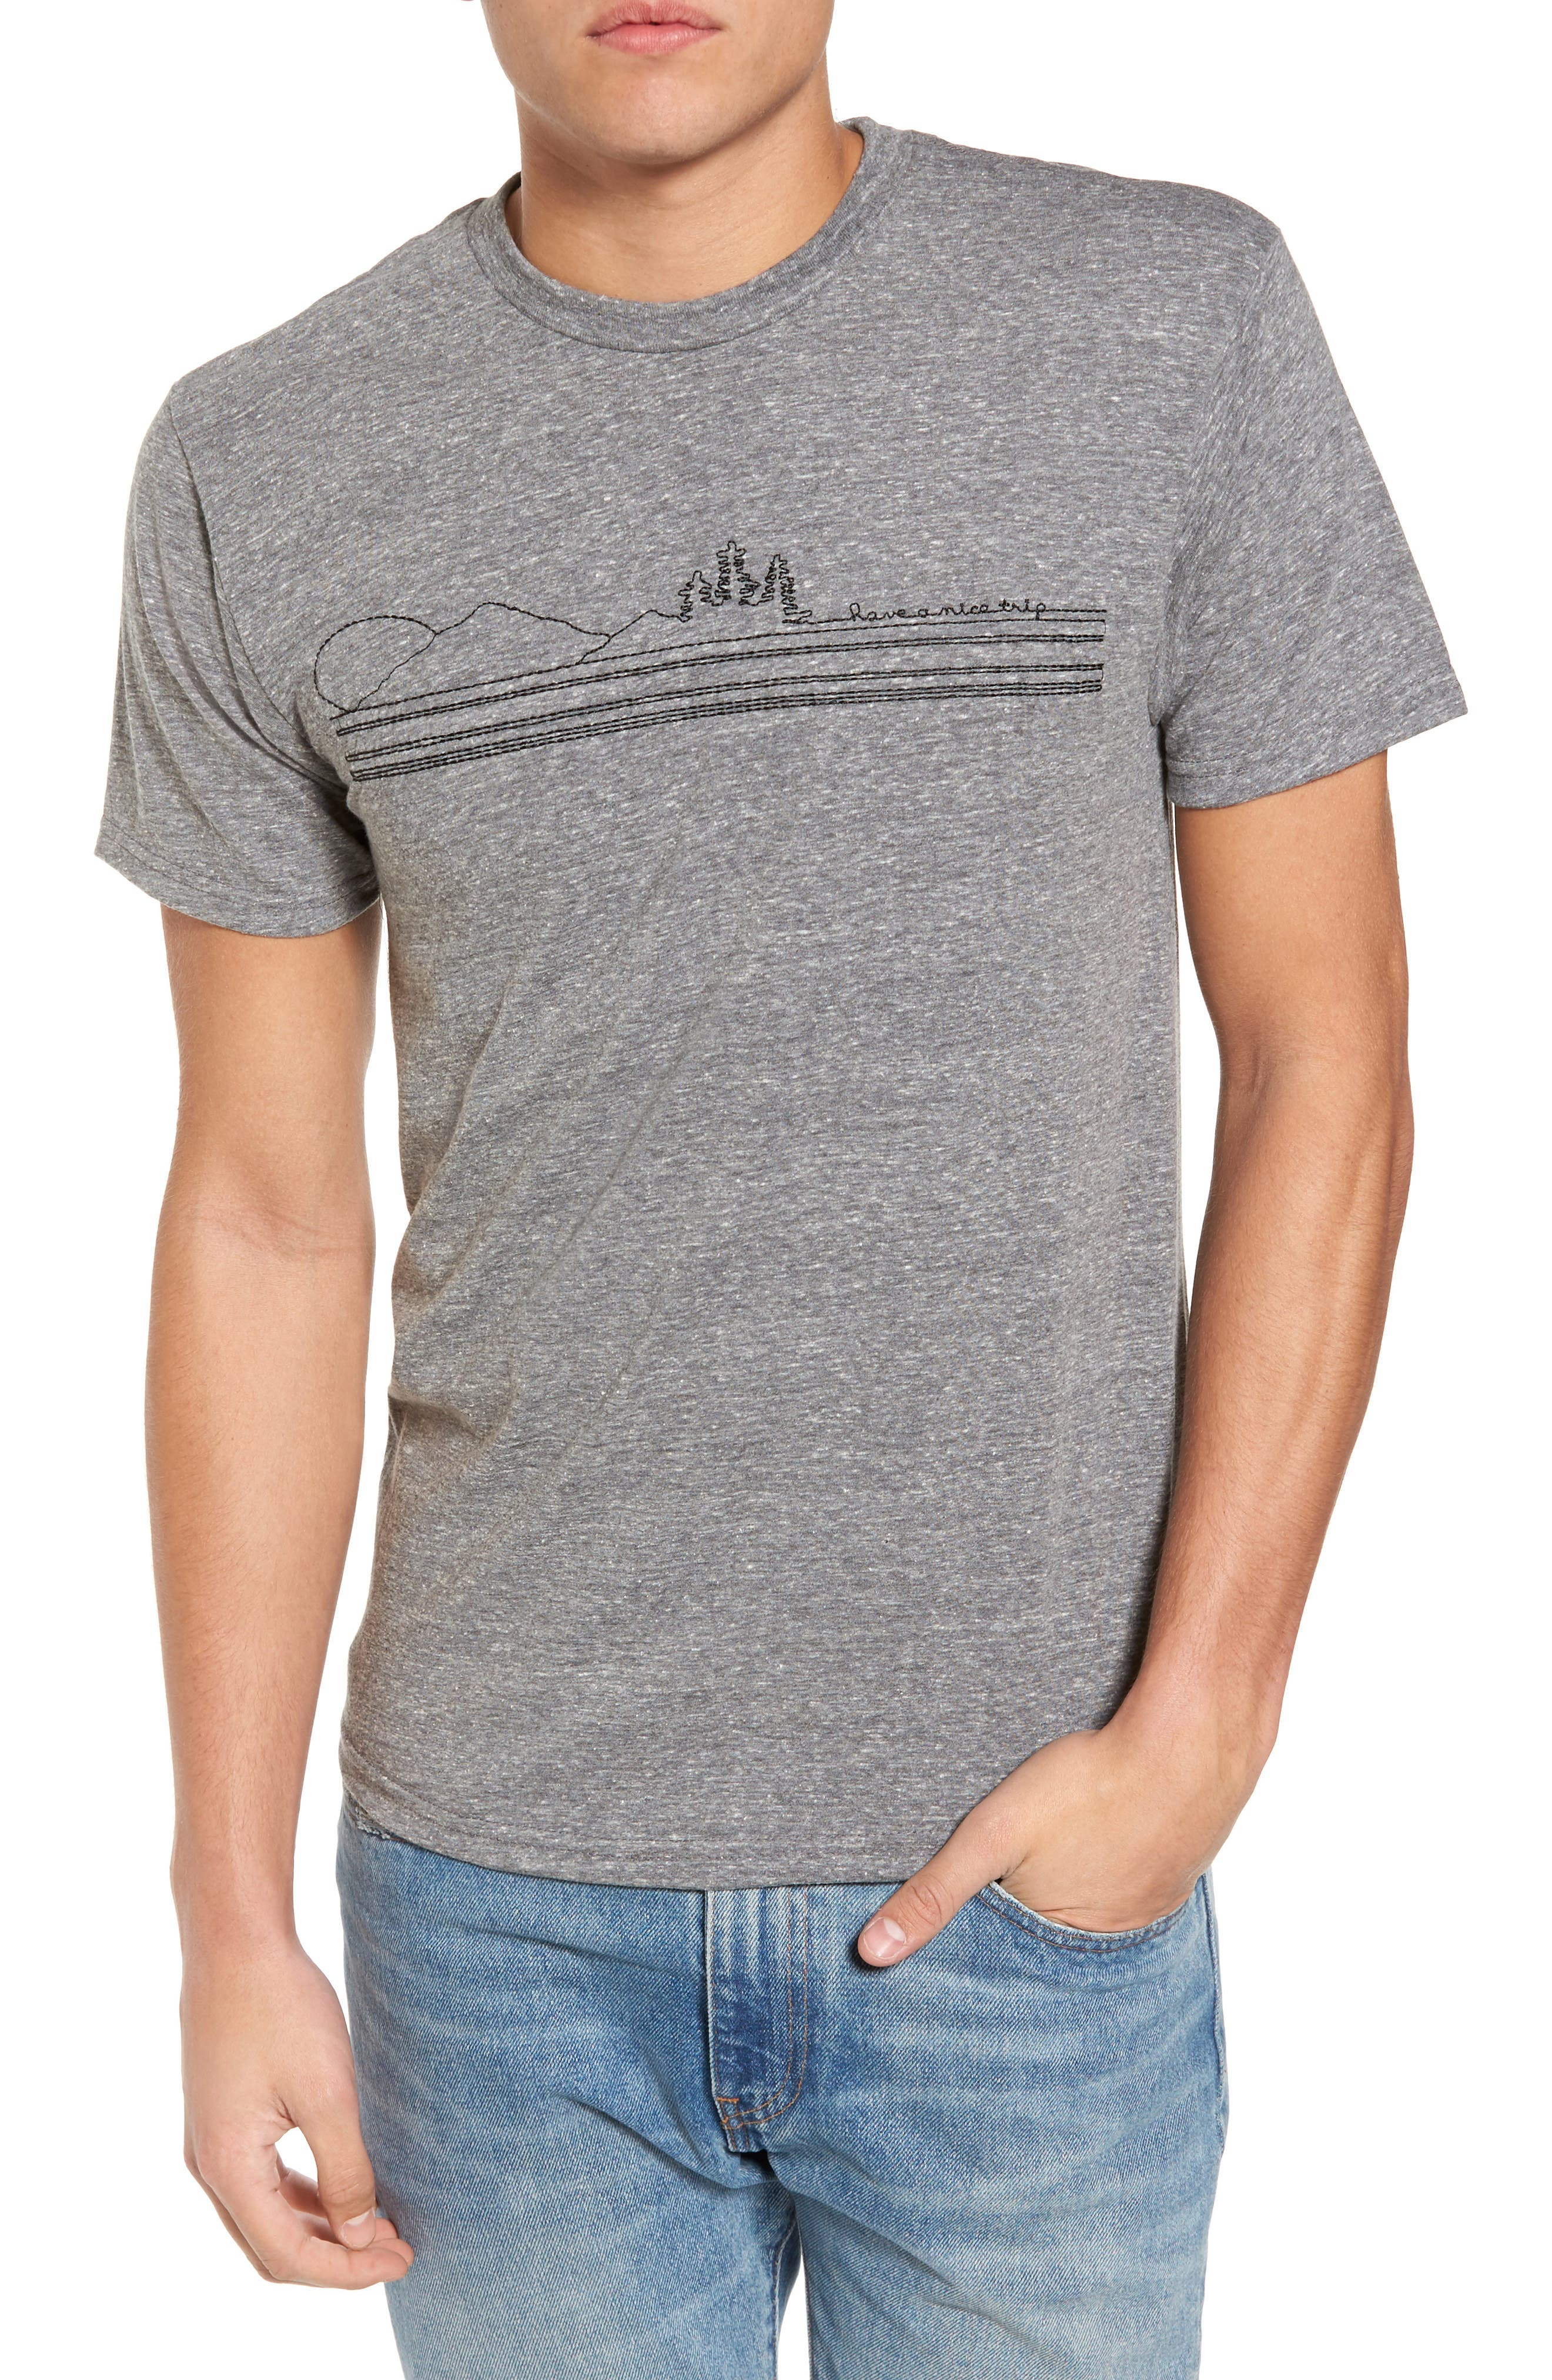 Have a Nice Trip Embroidered T-Shirt,                         Main,                         color, 034